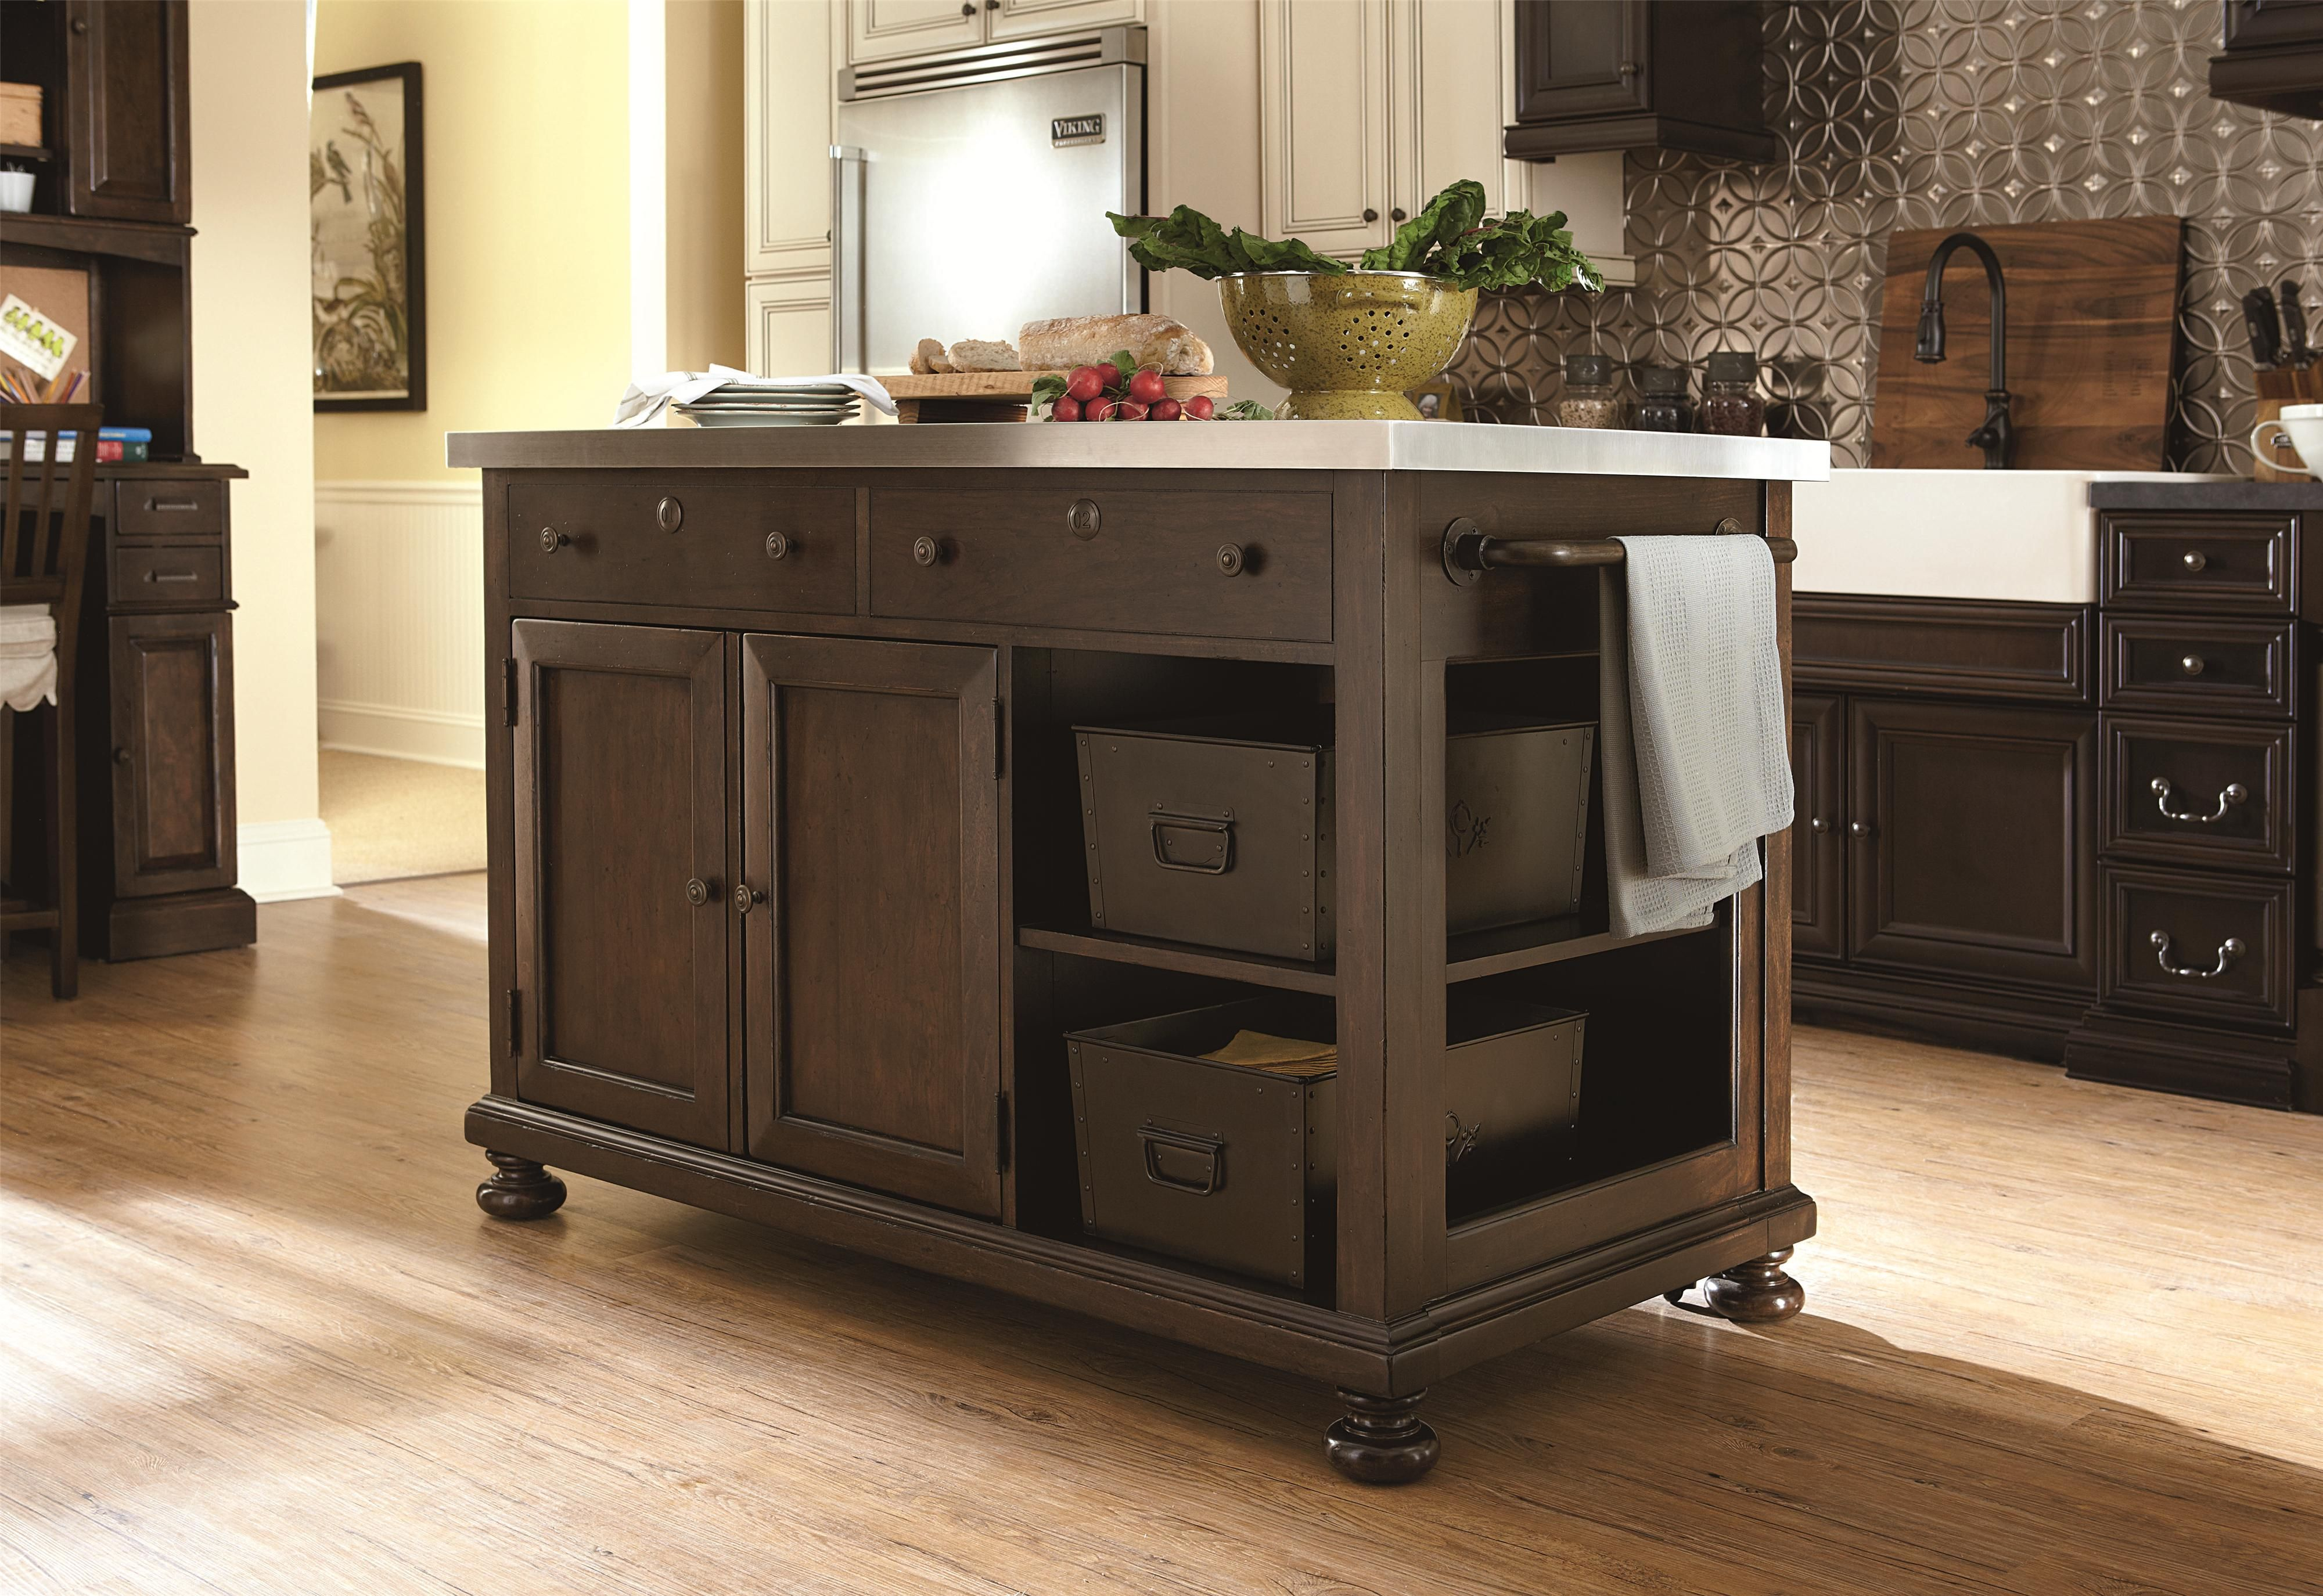 River House Kitchen Island With Slide Out Table By Paula Deen By Universal Wolf Furni Kitchen Island Furniture Broyhill Furniture Freestanding Kitchen Island